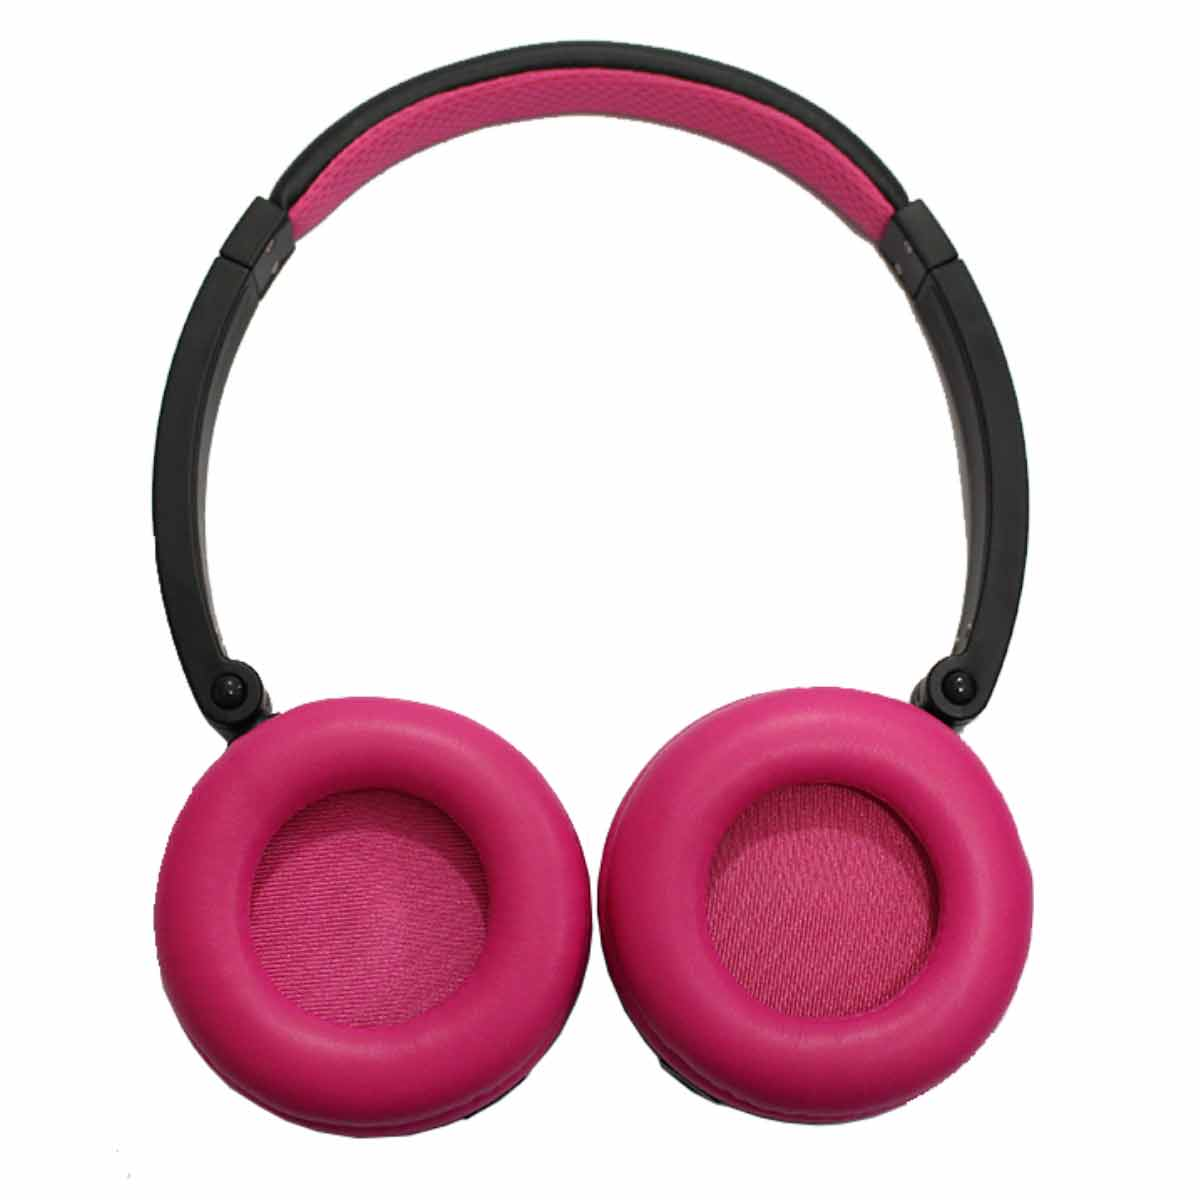 CD46 - Fone de Ouvido On-ear CD 46 Rosa - YOGA